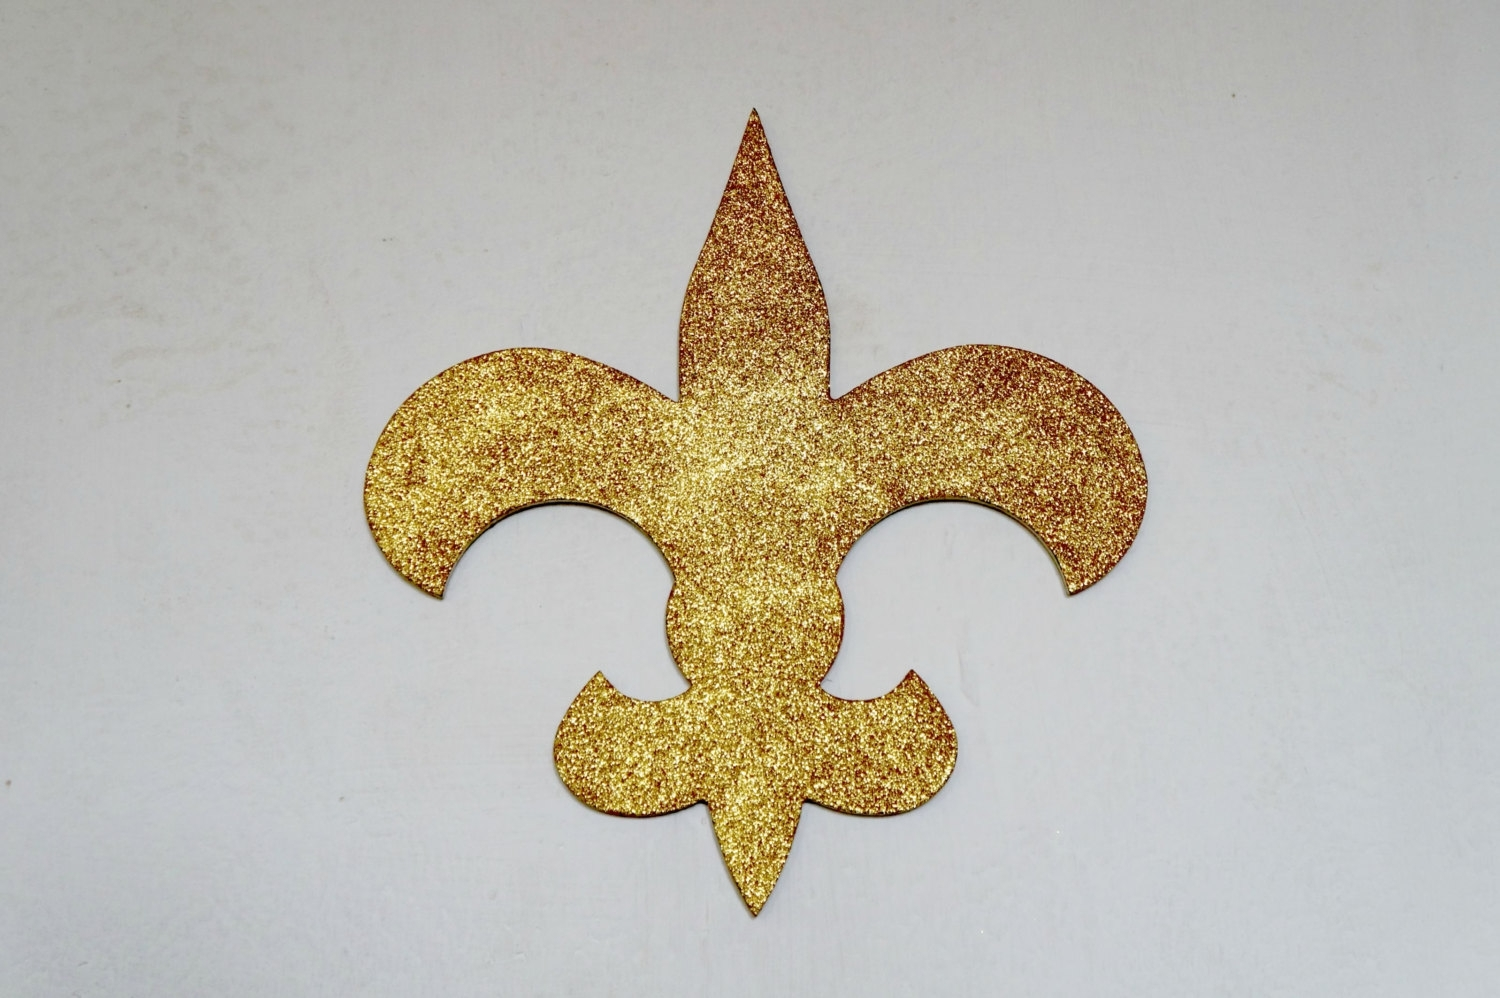 Fleur De Lis Wall Decor Woodcut Lily Iris Flower Wooden, Fleur De Throughout Best And Newest Fleur De Lis Wall Art (Gallery 16 of 20)